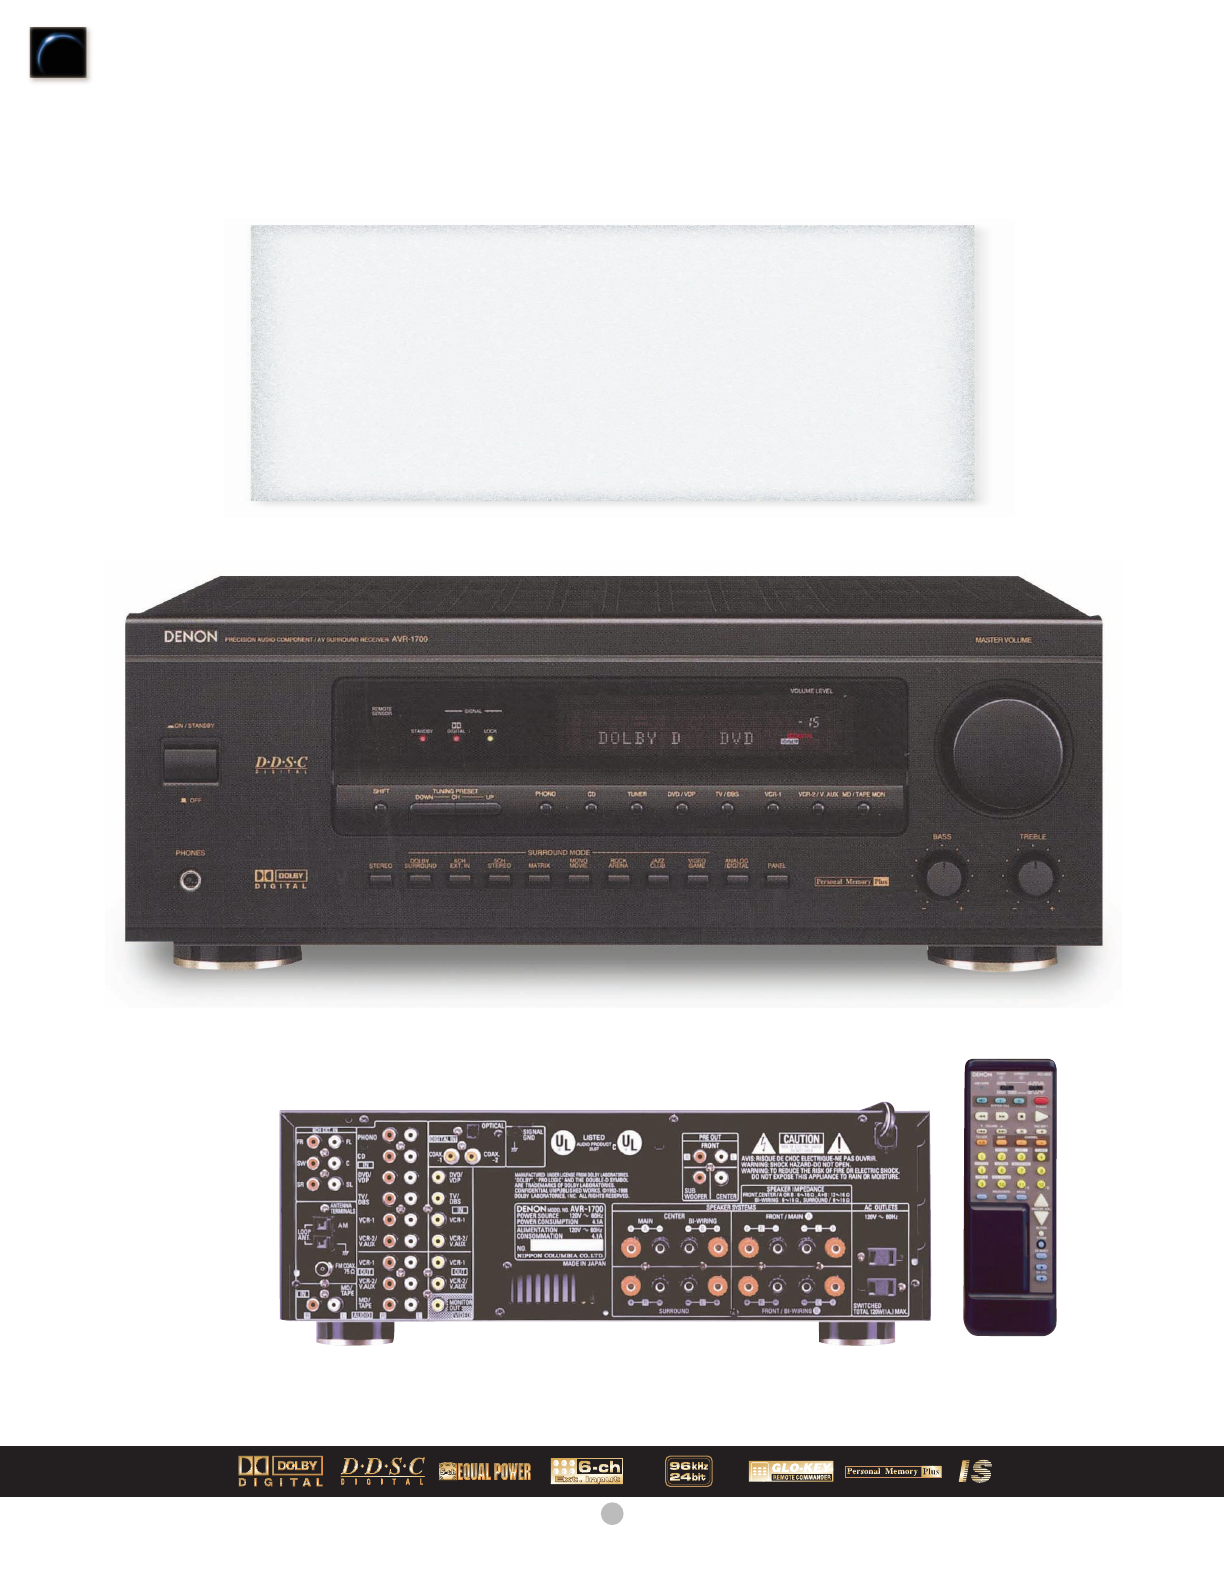 denon stereo receiver avr 1700 user guide manualsonline com rh audio manualsonline com denon manual avr s530bt denon manual avr s530bt